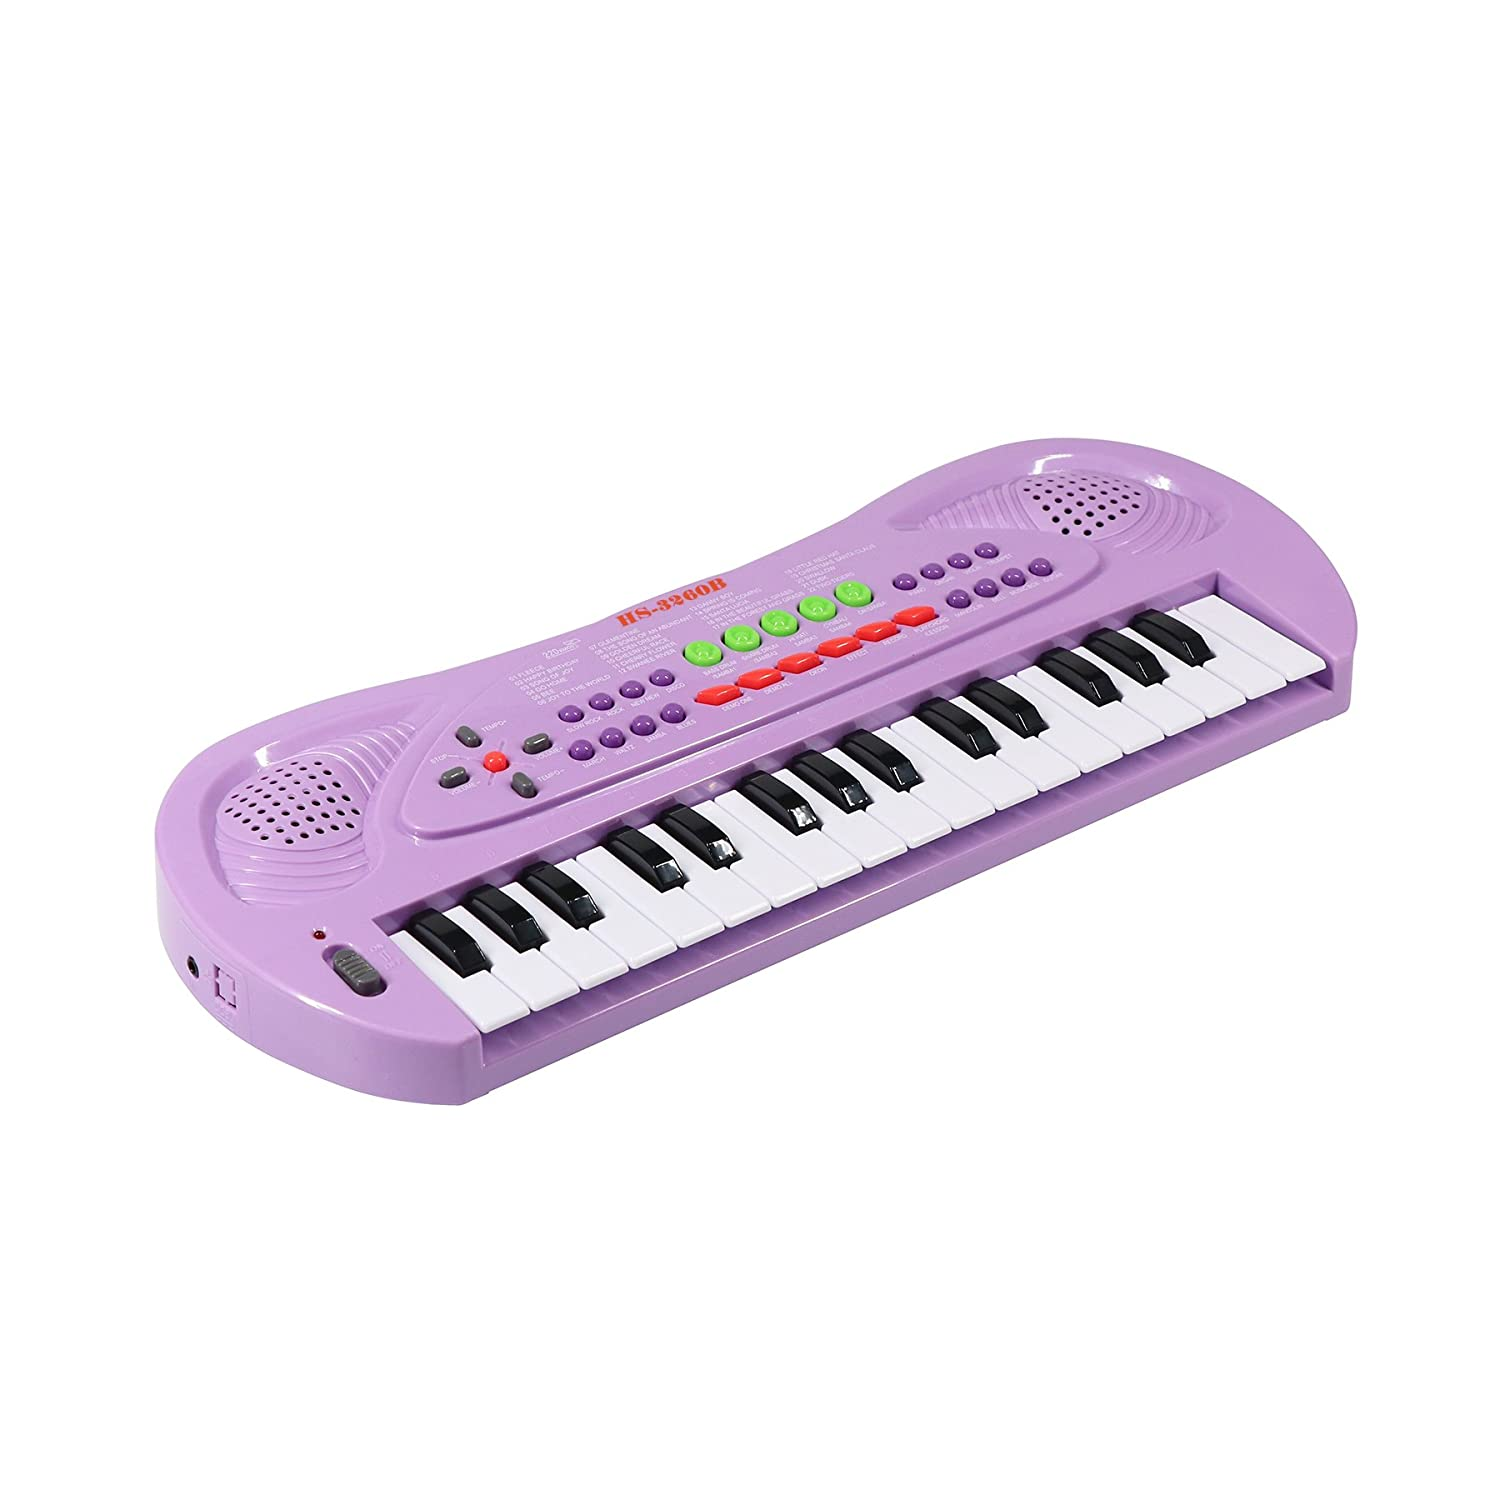 Kids Piano, aPerfectLife 32 Keys Multifunction Electronic Kids Keyboard Piano Music Instrument for Toddler with Microphone (Purple) BETECHO 4334320434